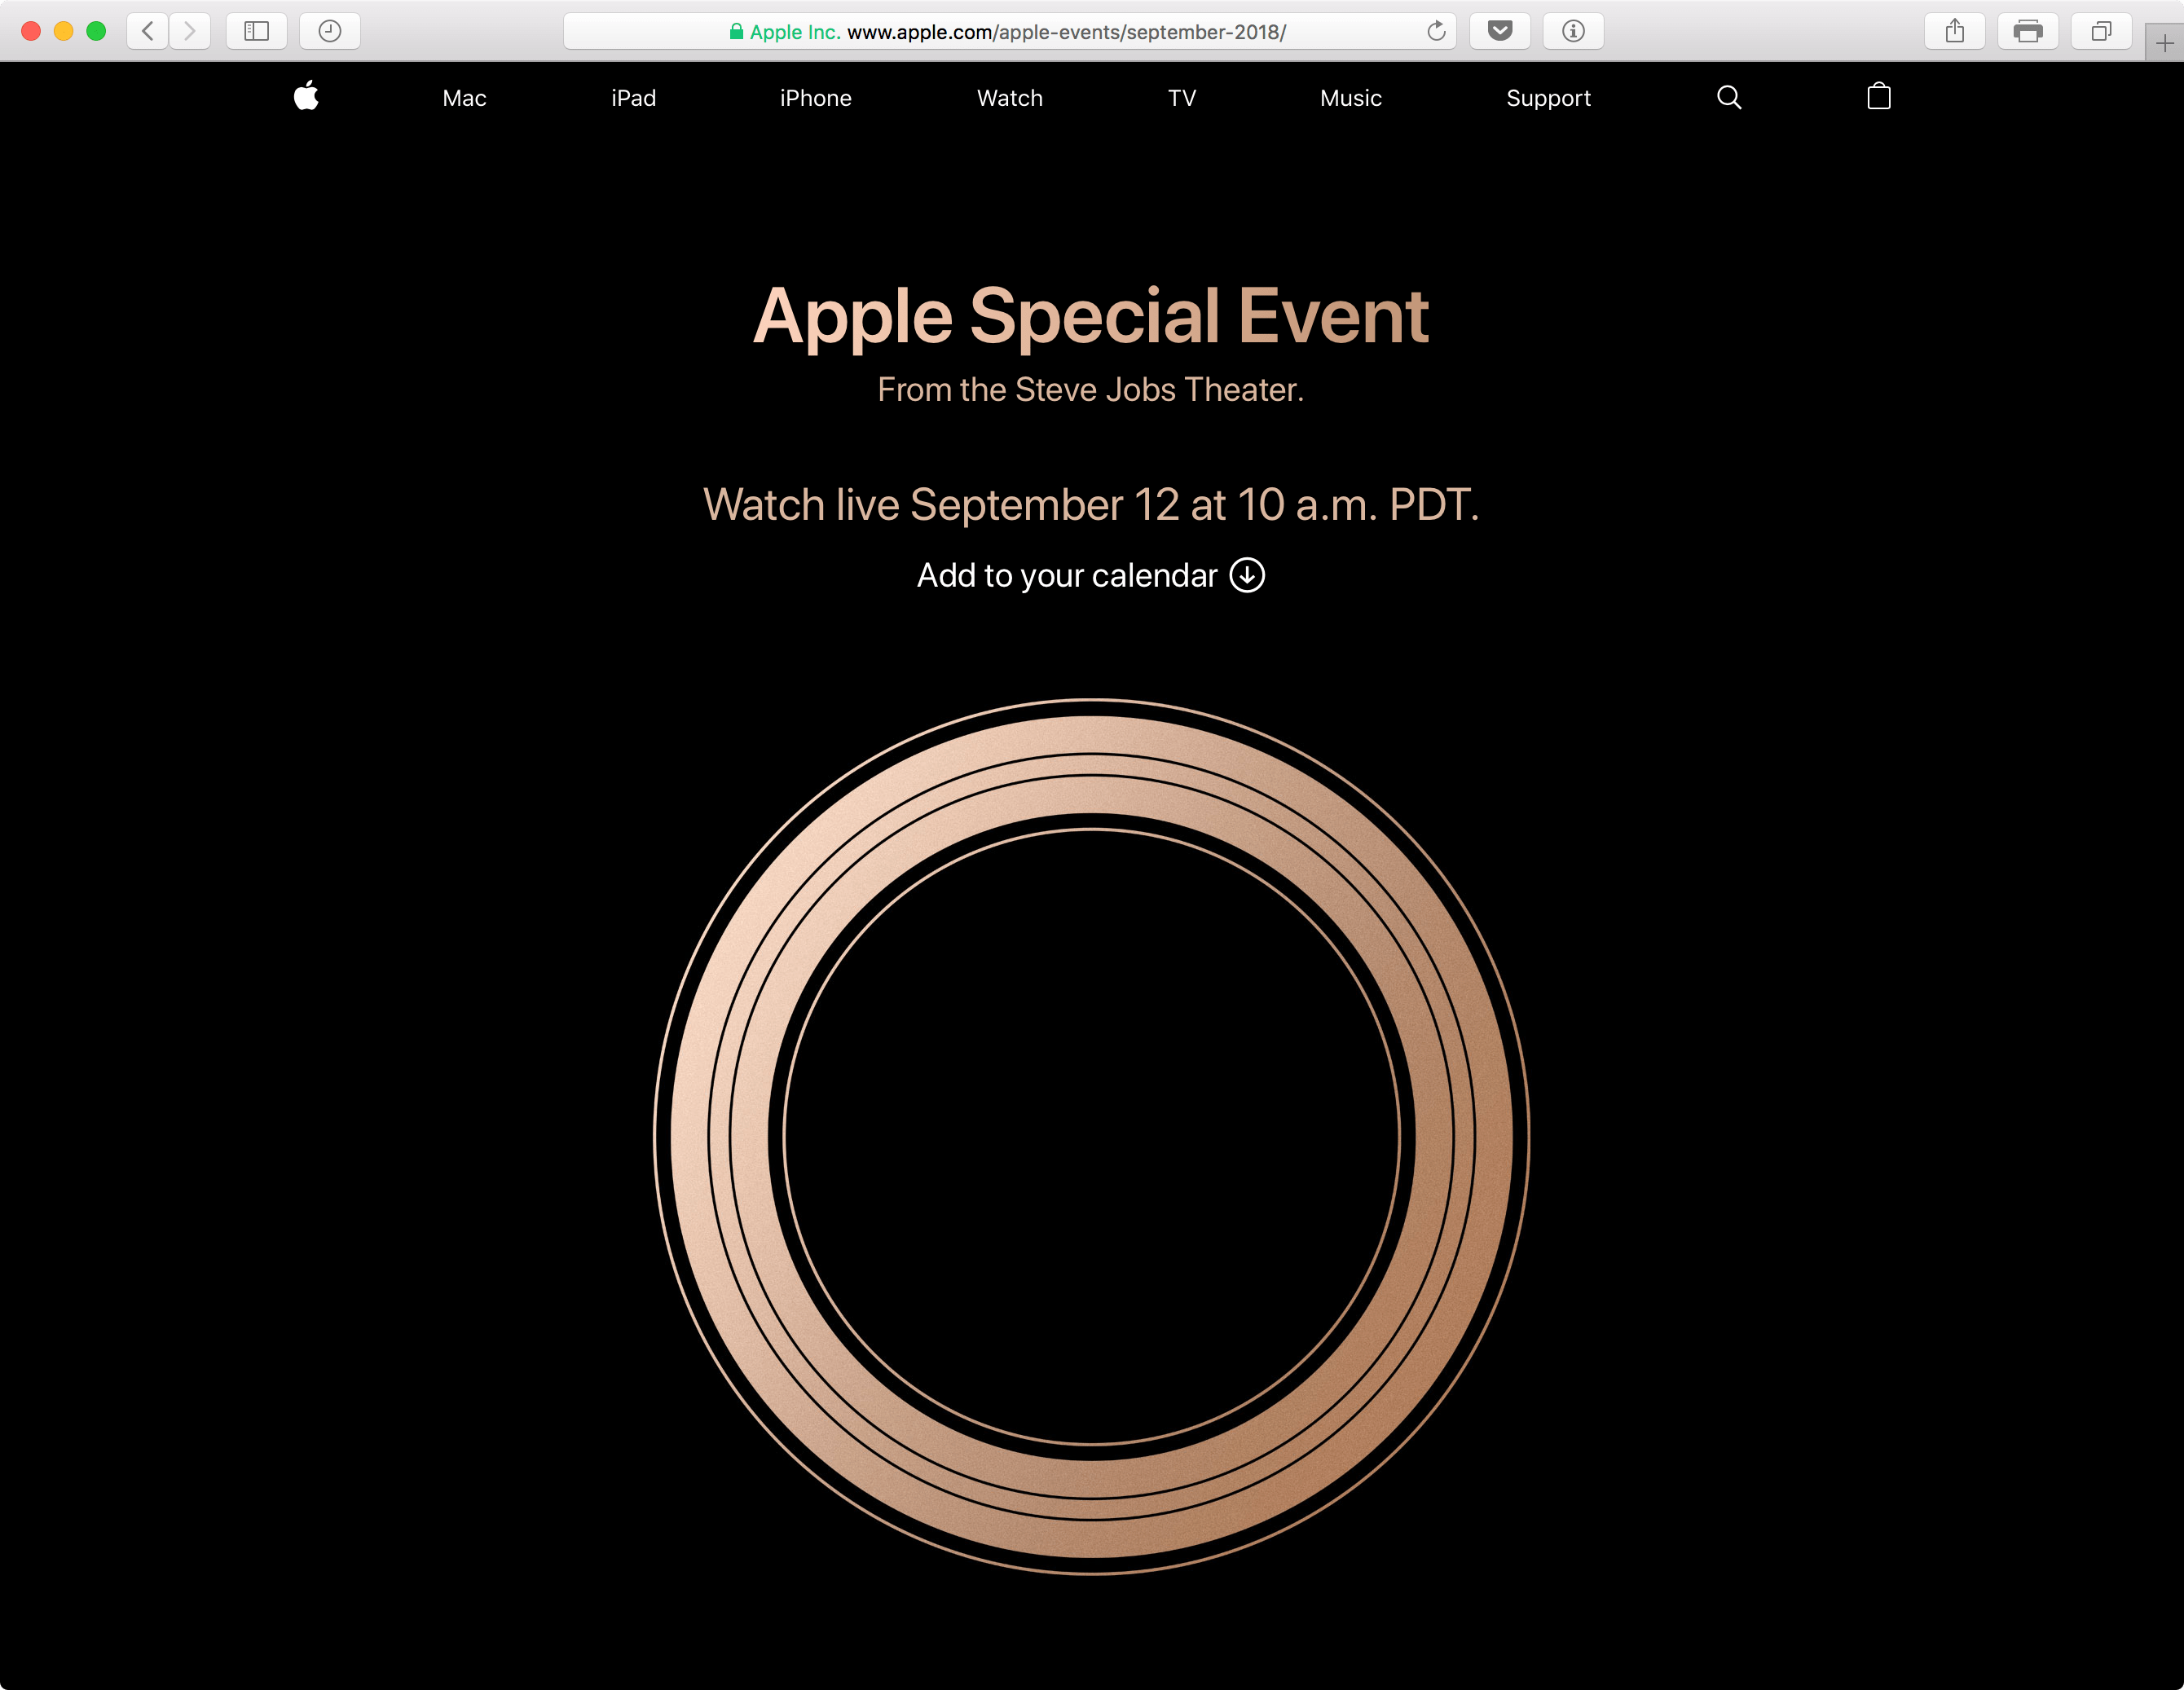 Transmissão da Apple do evento de 12/9